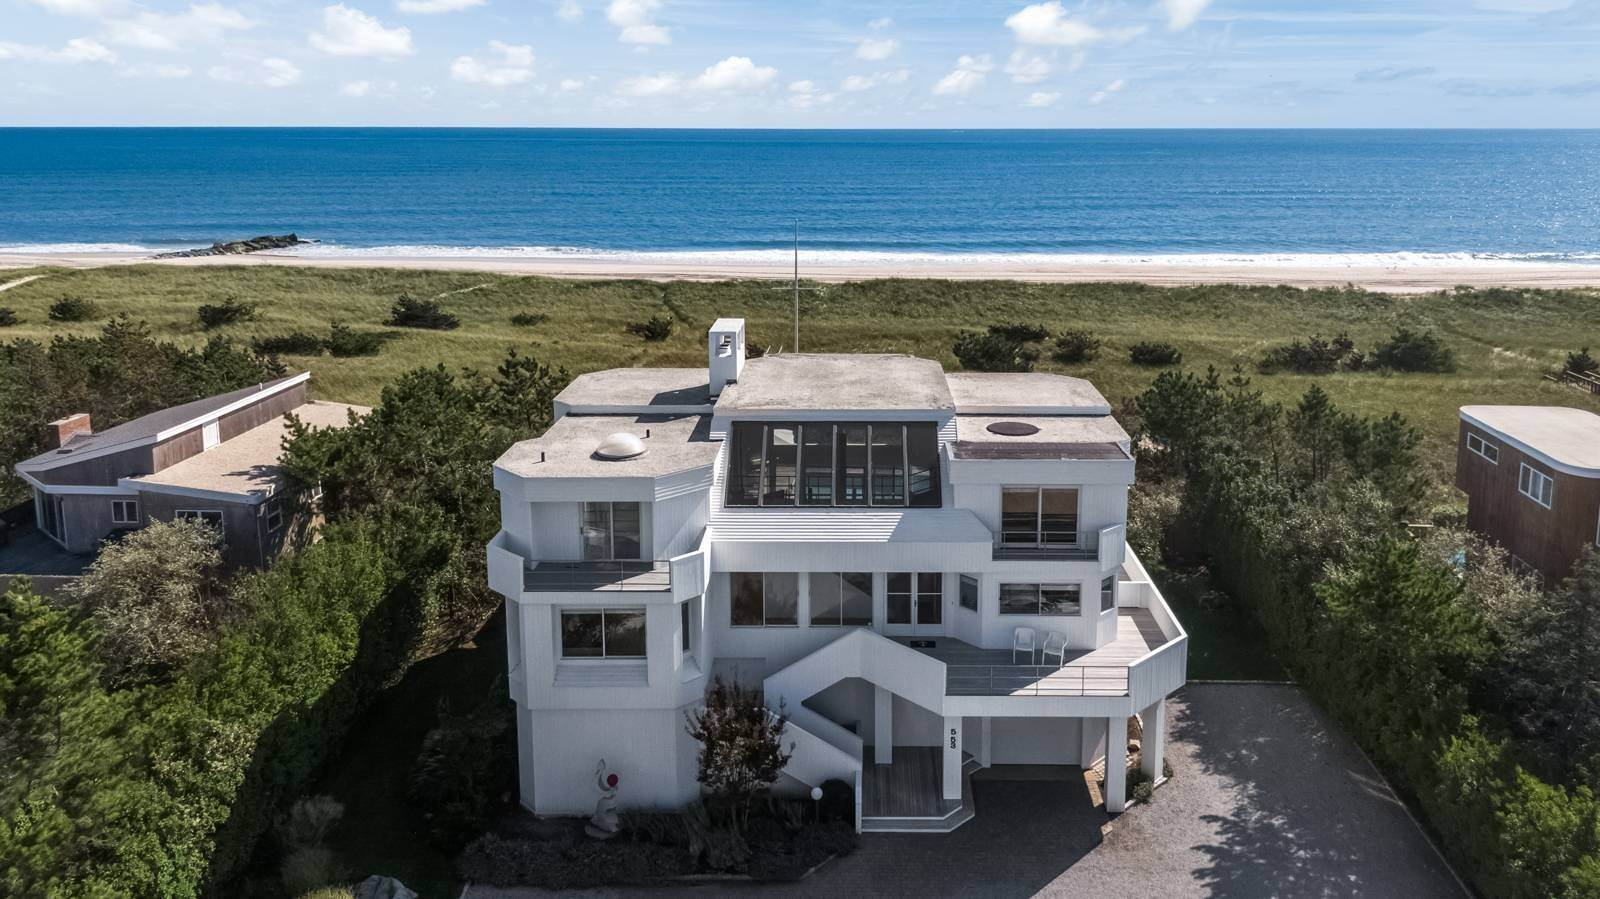 Single Family Home for Sale at Dune Road Oceanfront Contemporary 553 Dune Rd, Westhampton, NY 11978